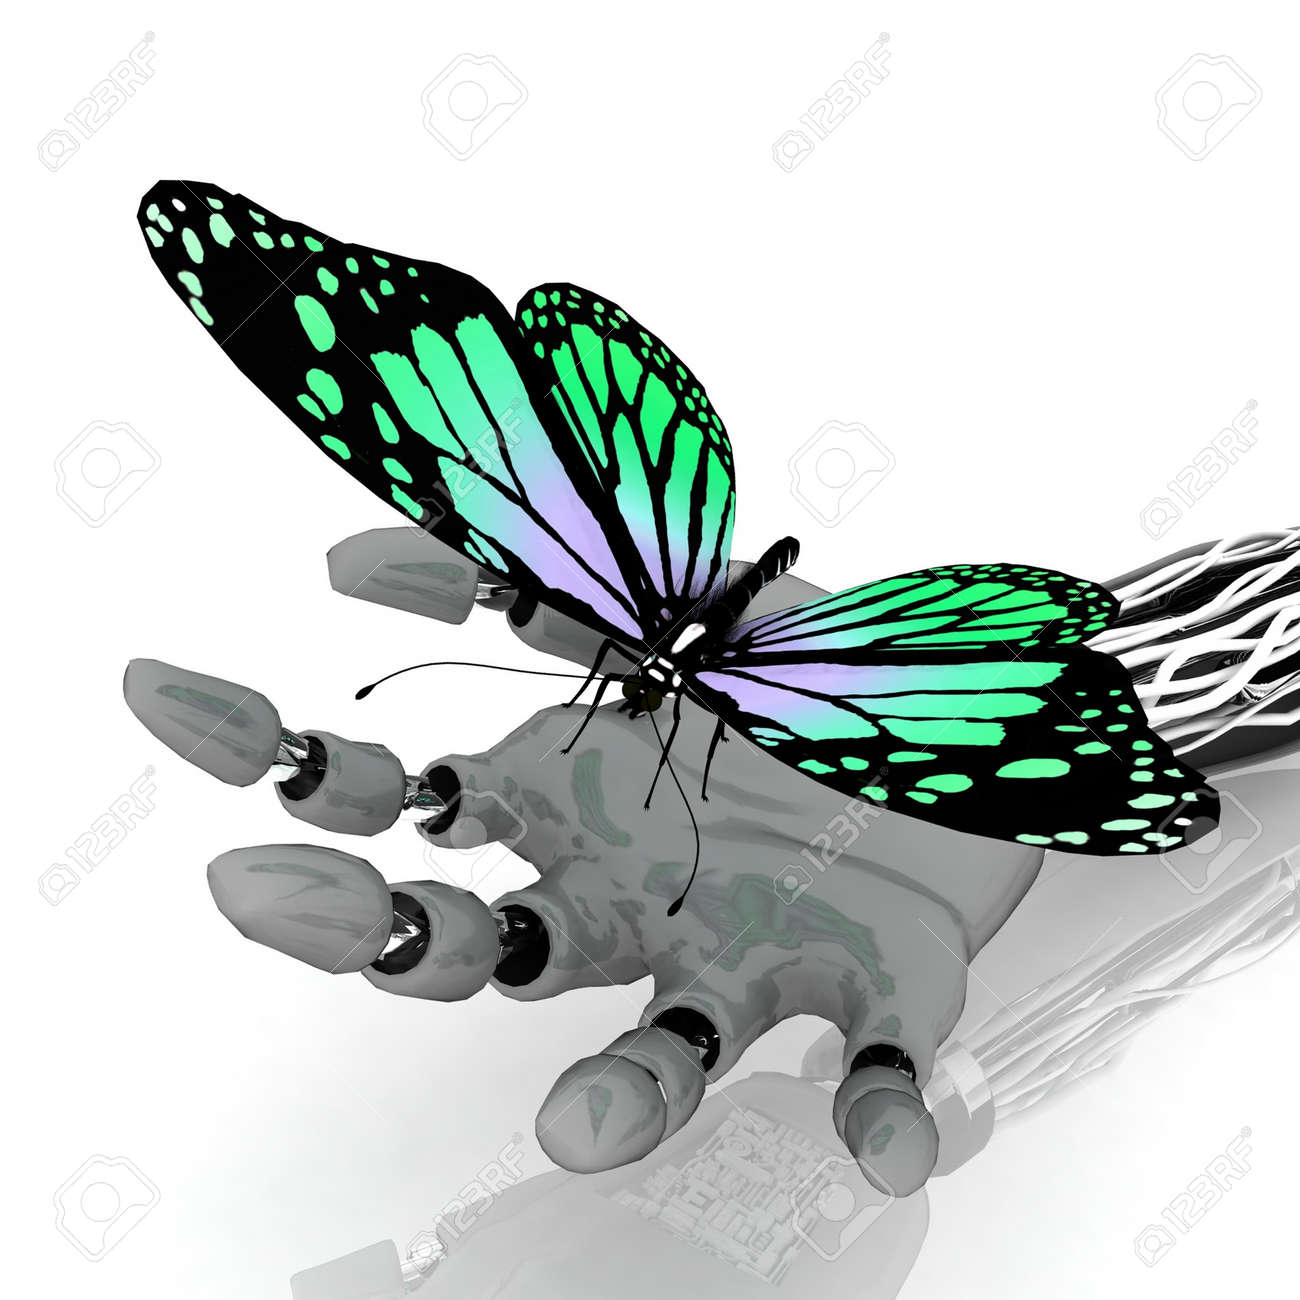 The butterfly on a hand of the robot Stock Photo - 11895576